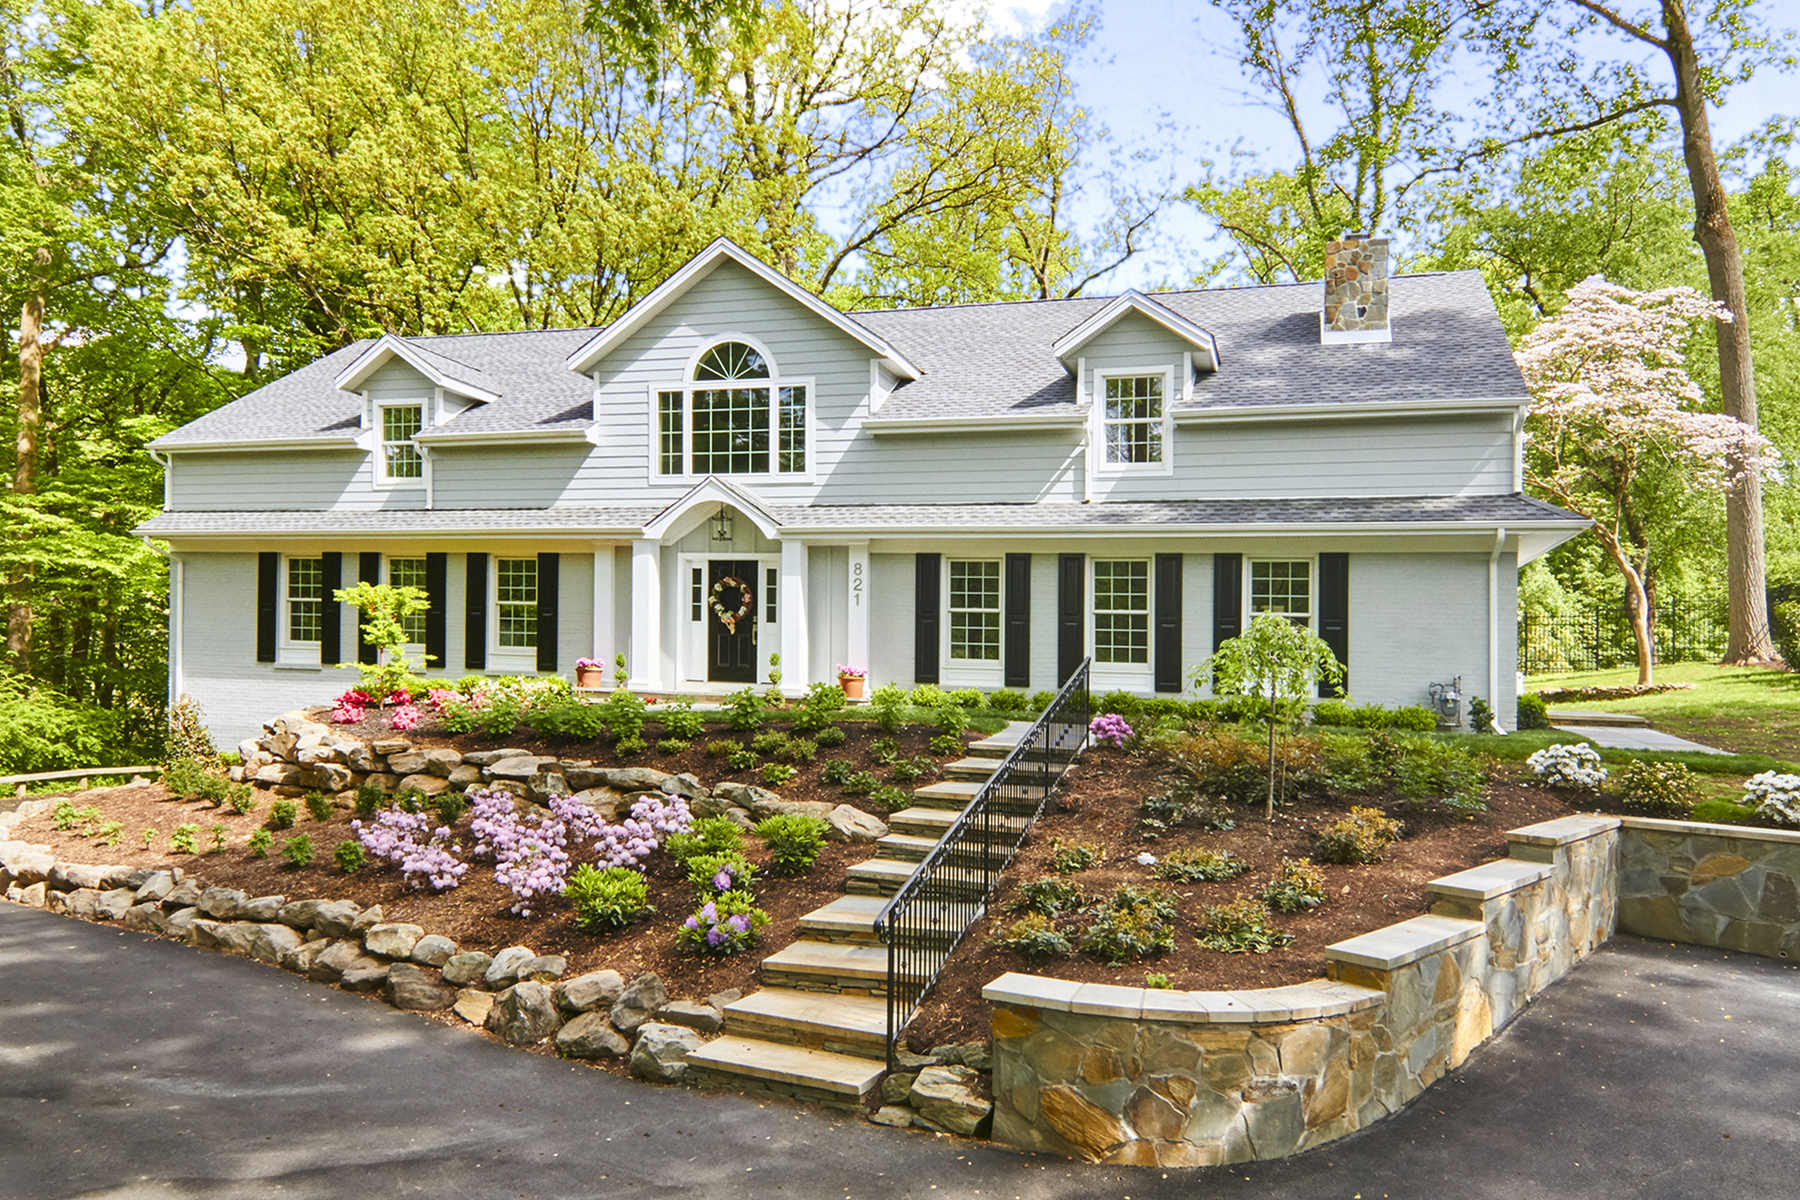 Single Family Home for Sale at Radnor Township, PA 821 Colony Rd. Bryn Mawr, Pennsylvania 19010 United States